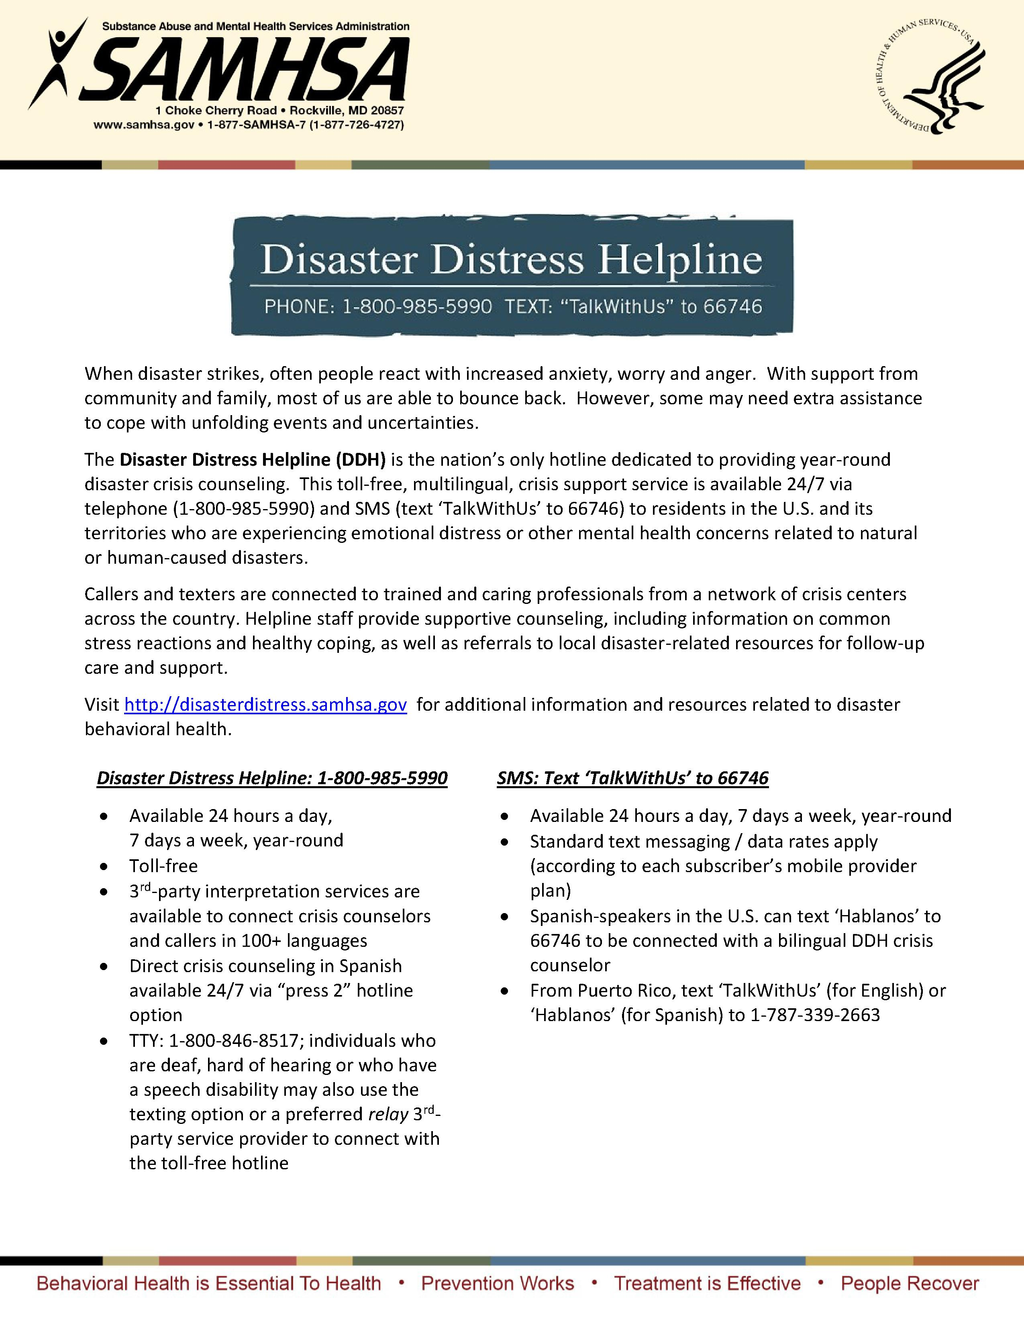 National Helpline Samhsa Substance Abuse And Mental Health >> National Disaster Distress Hotline Info Resources